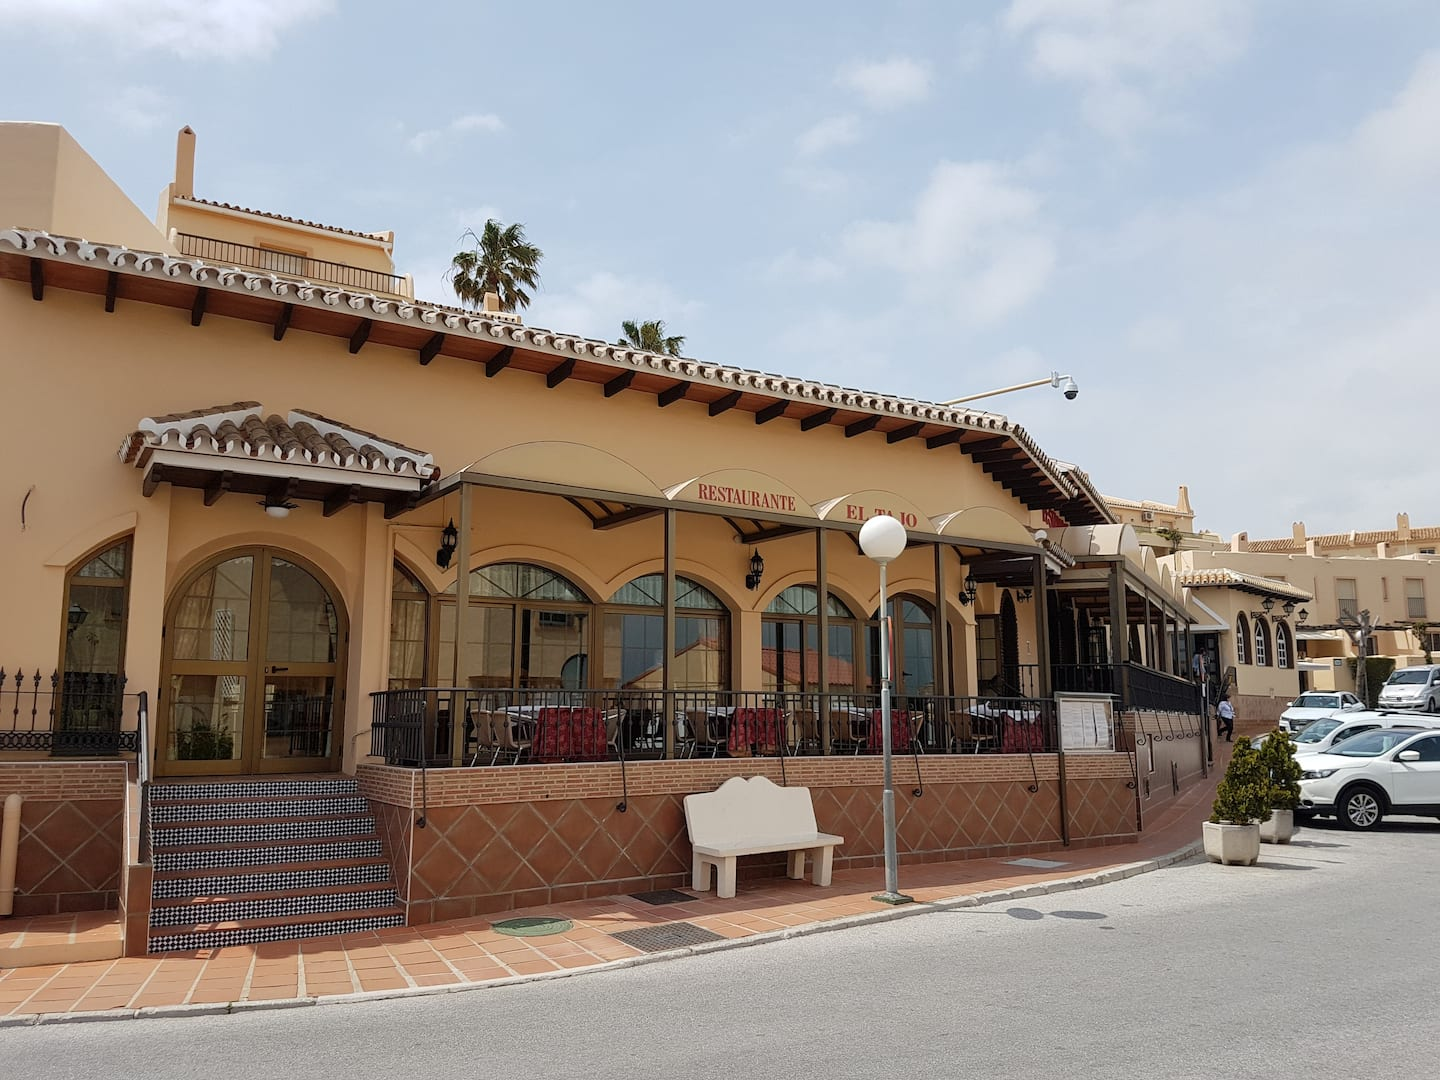 Zacharies restaurant, 70 meters from the house